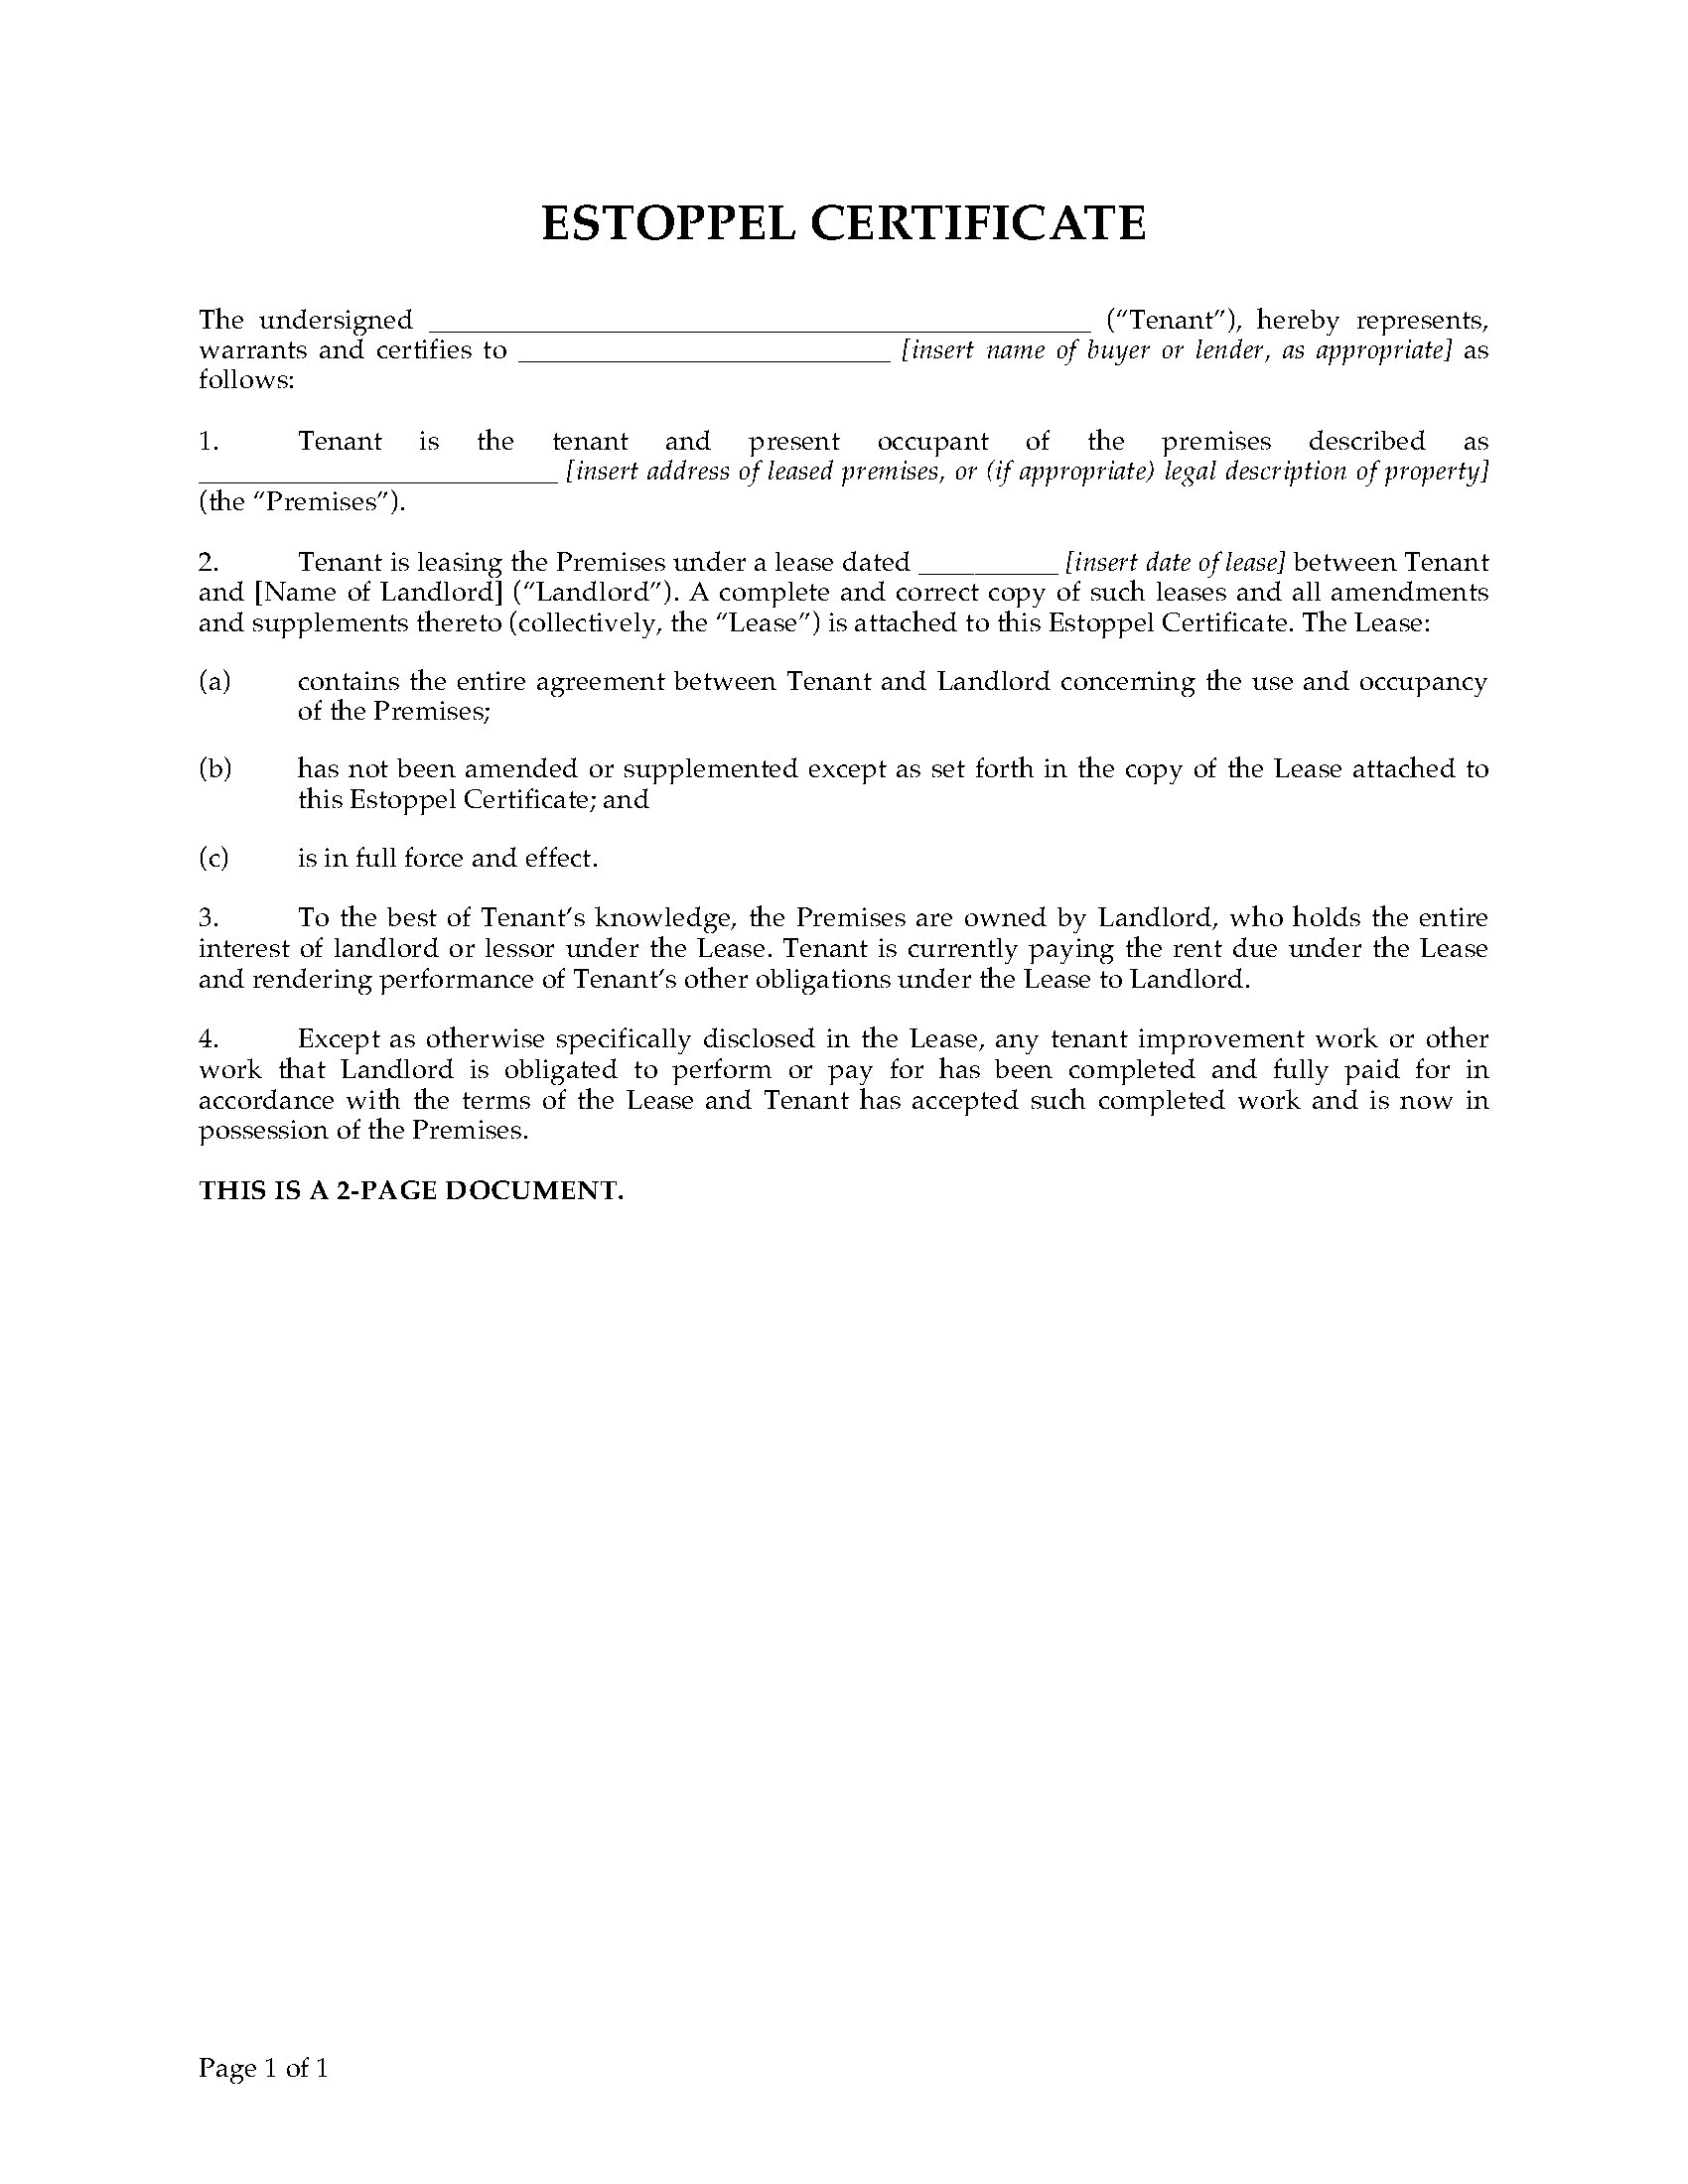 USA Commercial Tenant Estoppel Certificate | Legal Forms and ...